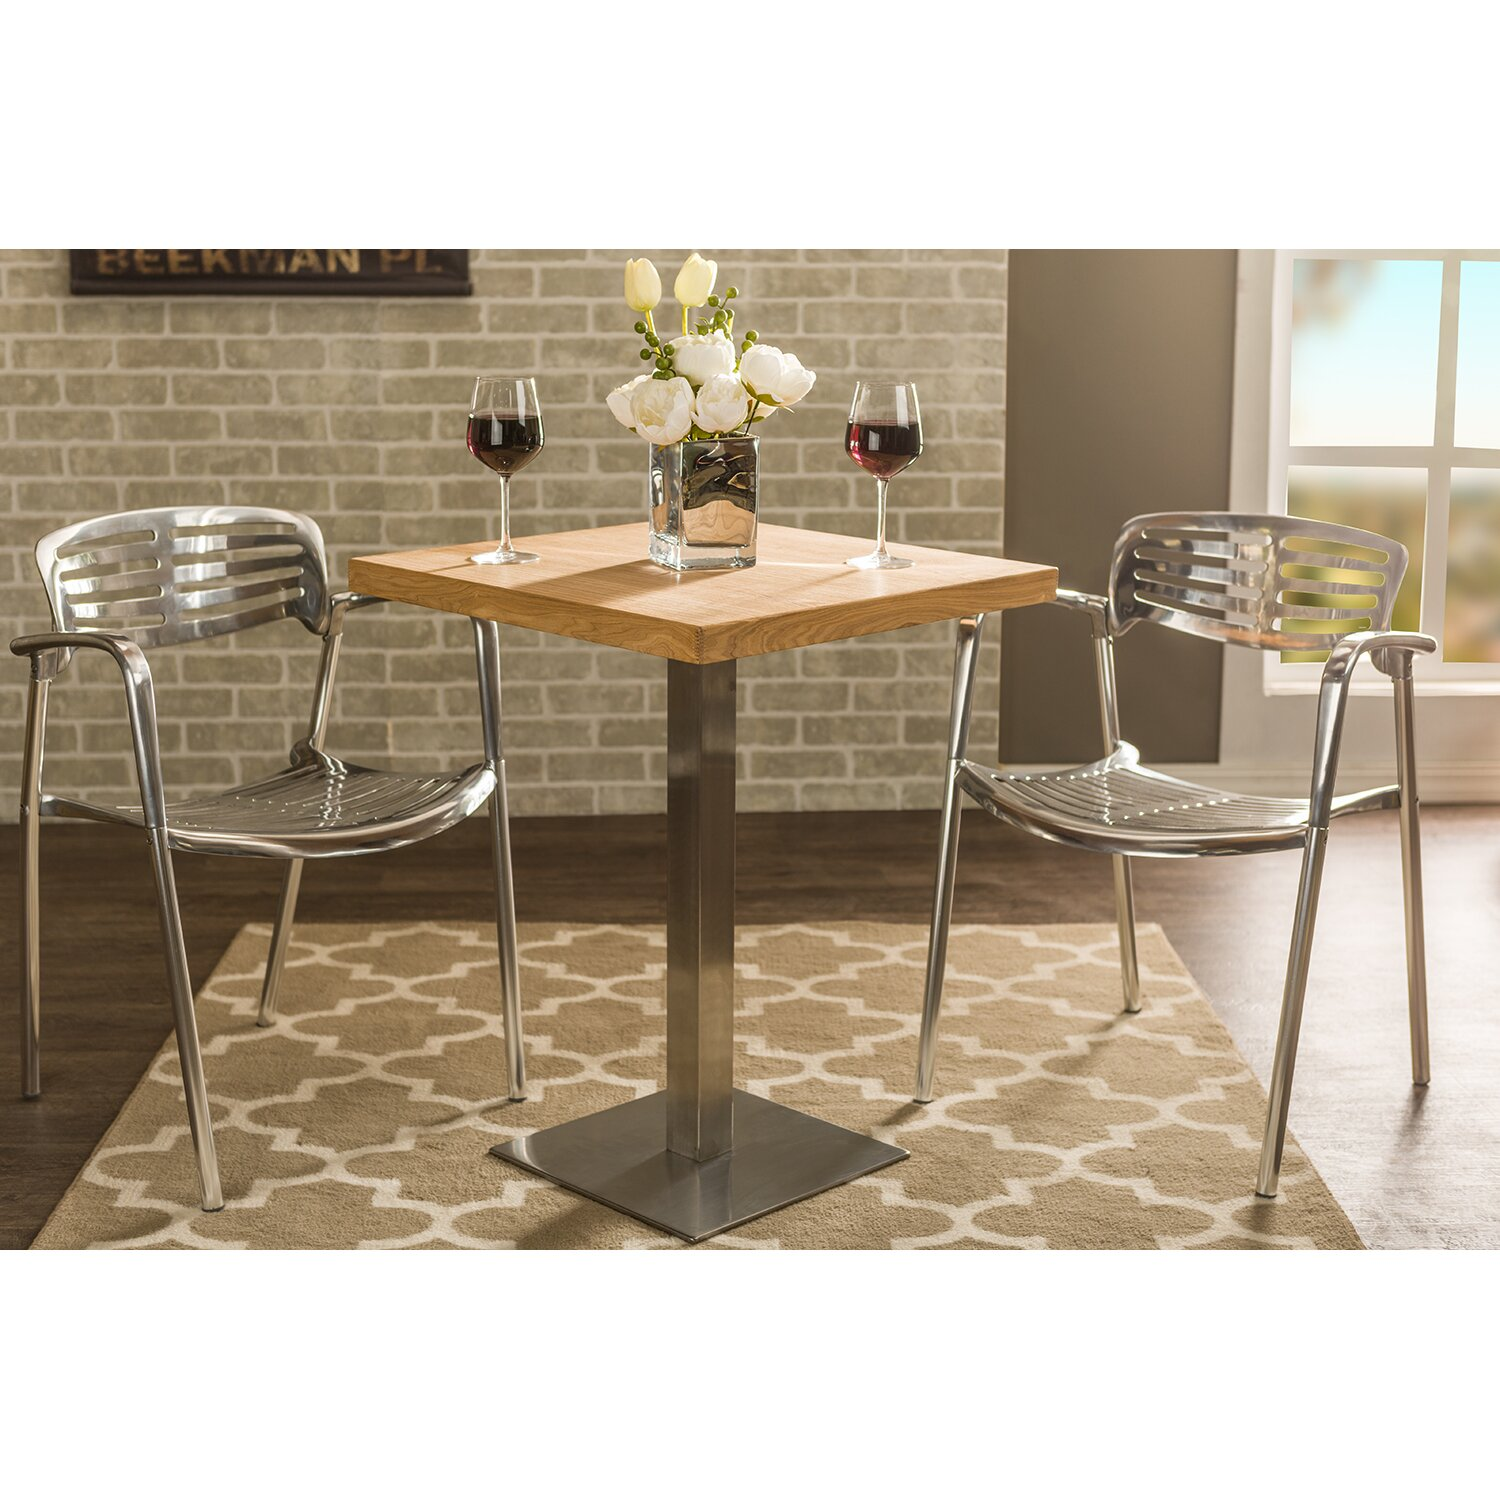 Wholesale Dining Tables: Wholesale Interiors Baxton Studio Owen Dining Table